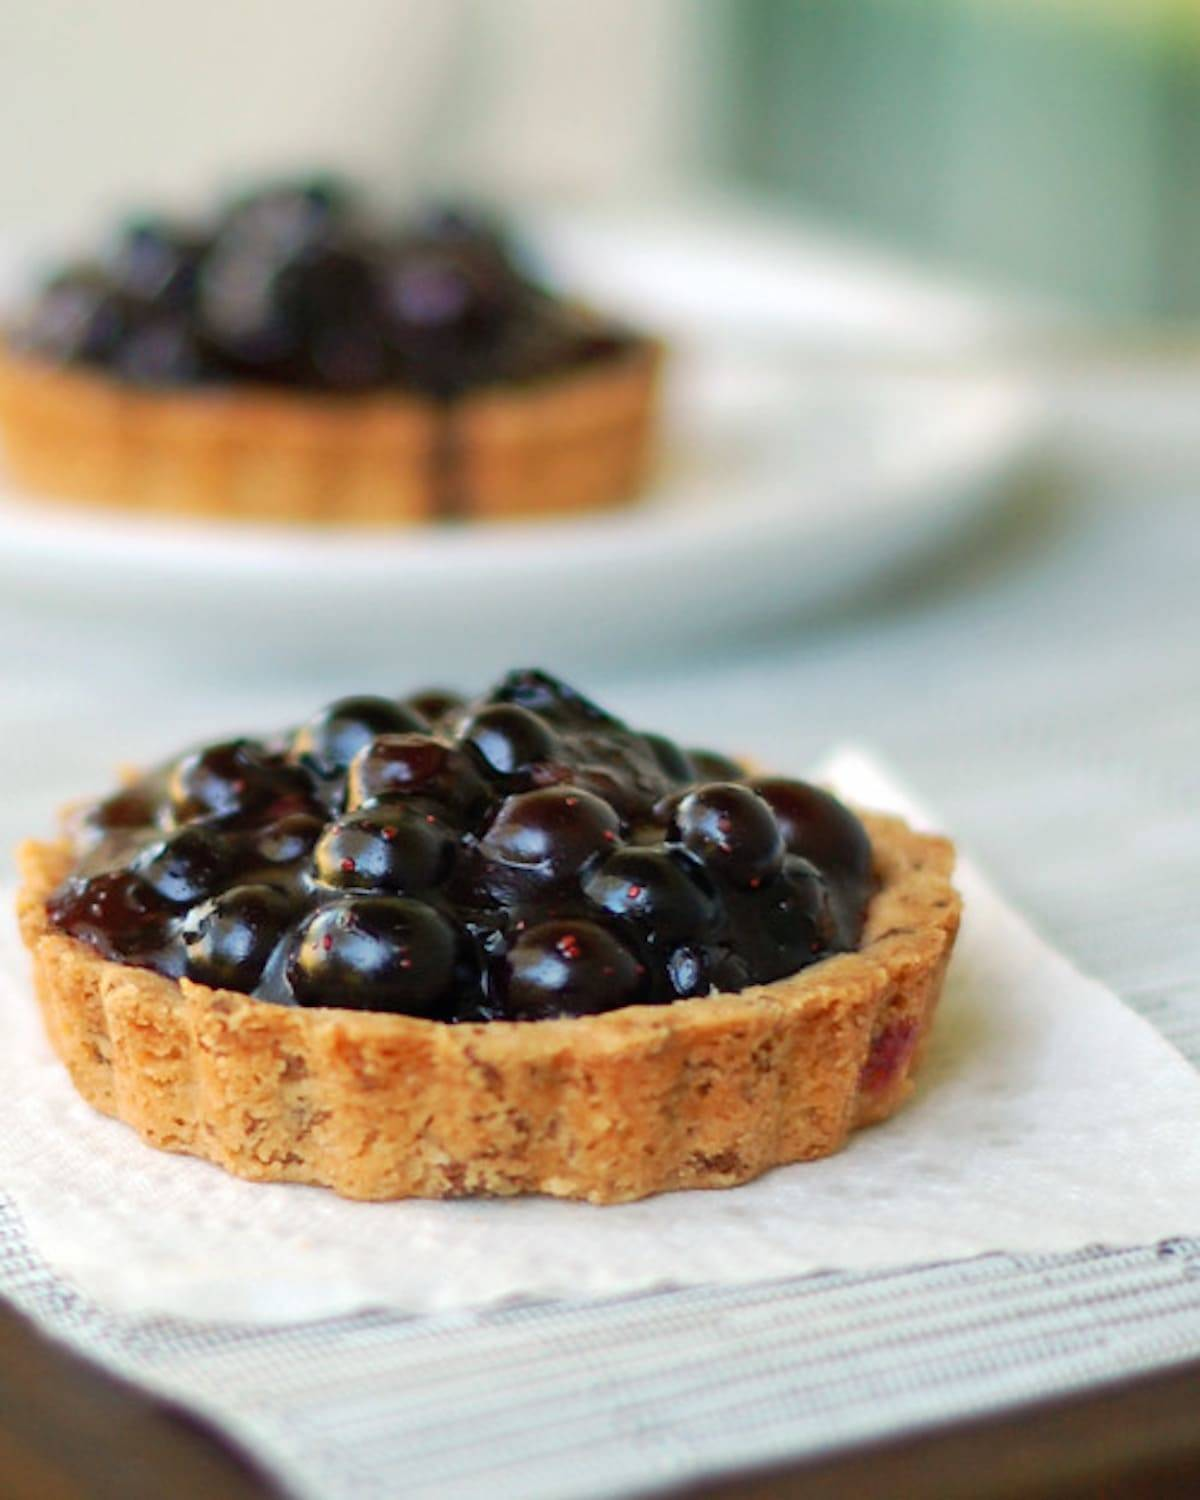 These fresh blueberry tarts have a deliciously textured homemade crust and are packed full of fresh blueberry filling. The best summer dessert! | pinchofyum.com